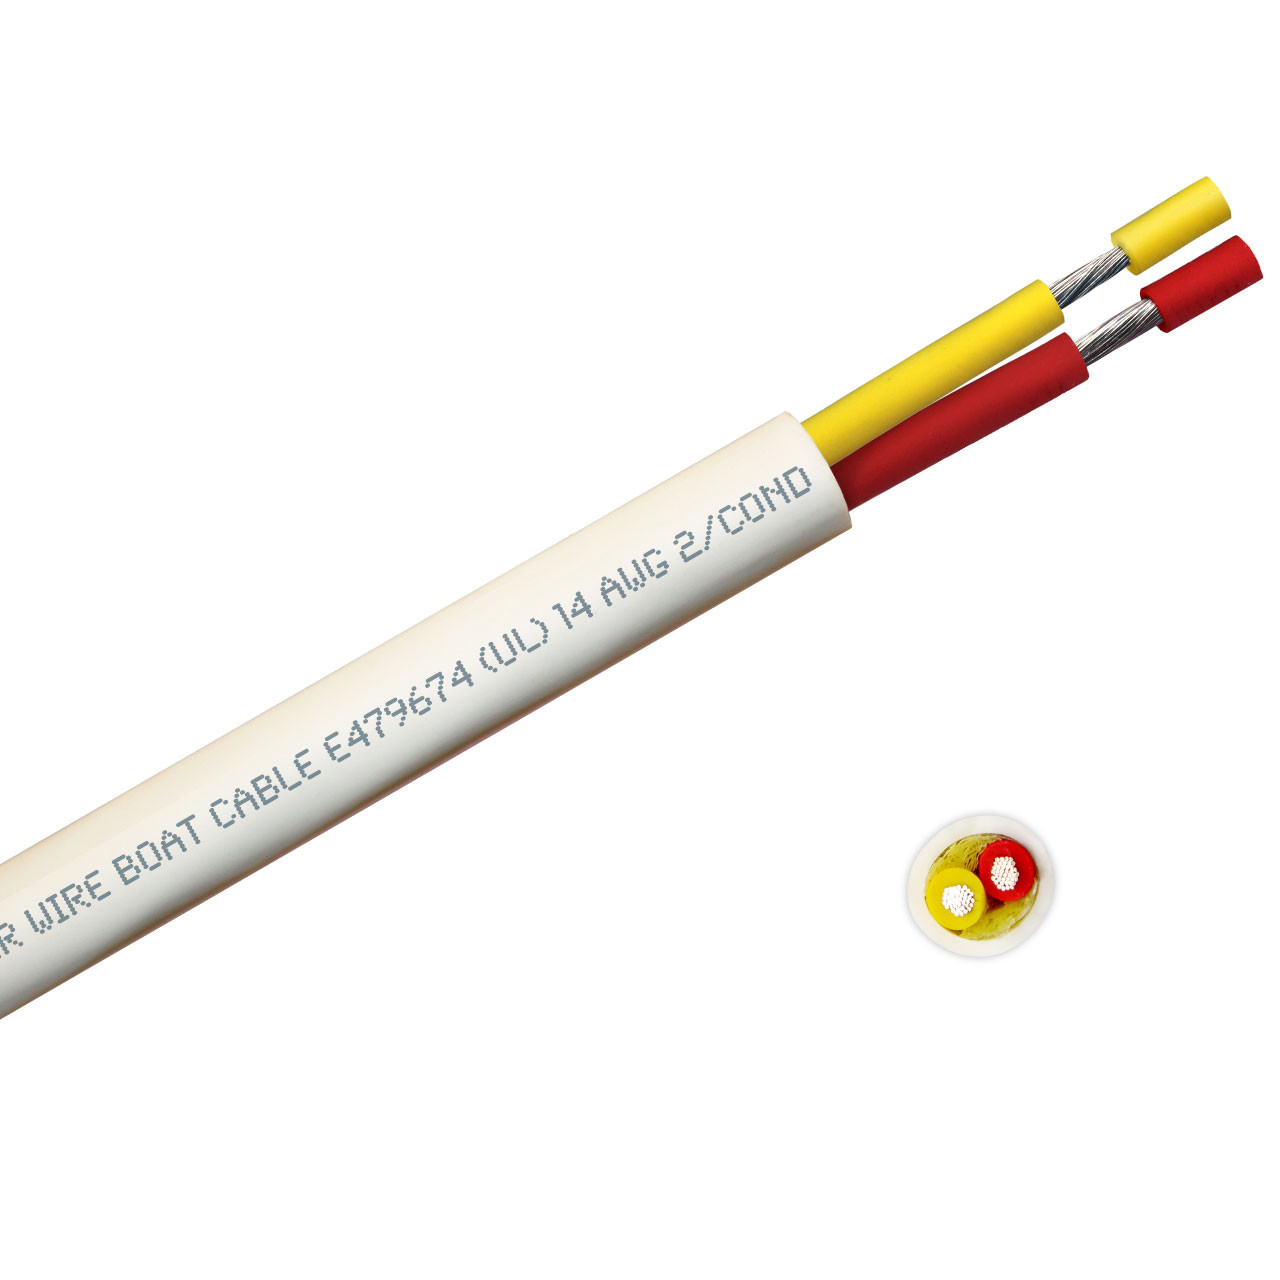 14 AWG round yellow and red safety dc duplex marine grade tinned copper bc5w2 boat cable features ultra flexible Class K fine copper stranding for flexibility and conductivity, exceeds ABYC standards, UL Listed, CSA Certified